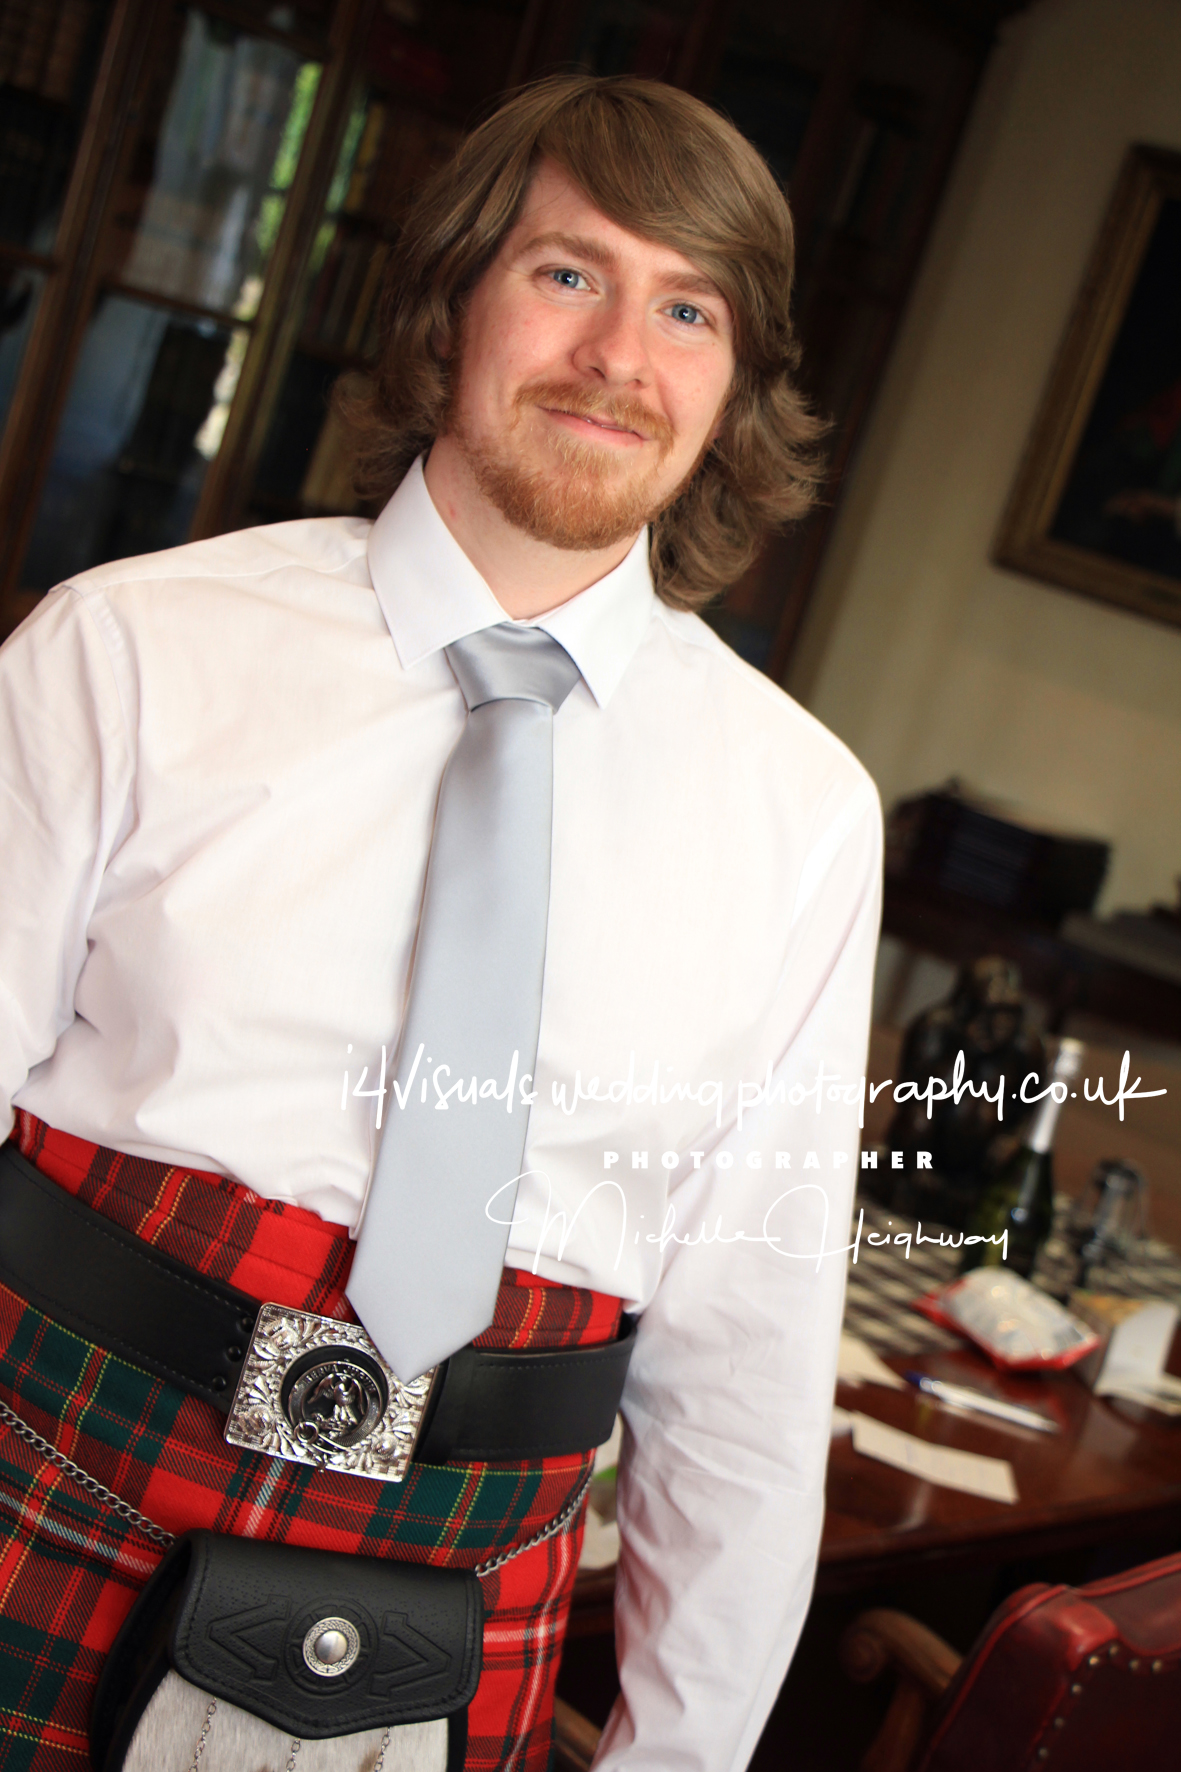 Wedding Photographer, Edinburgh